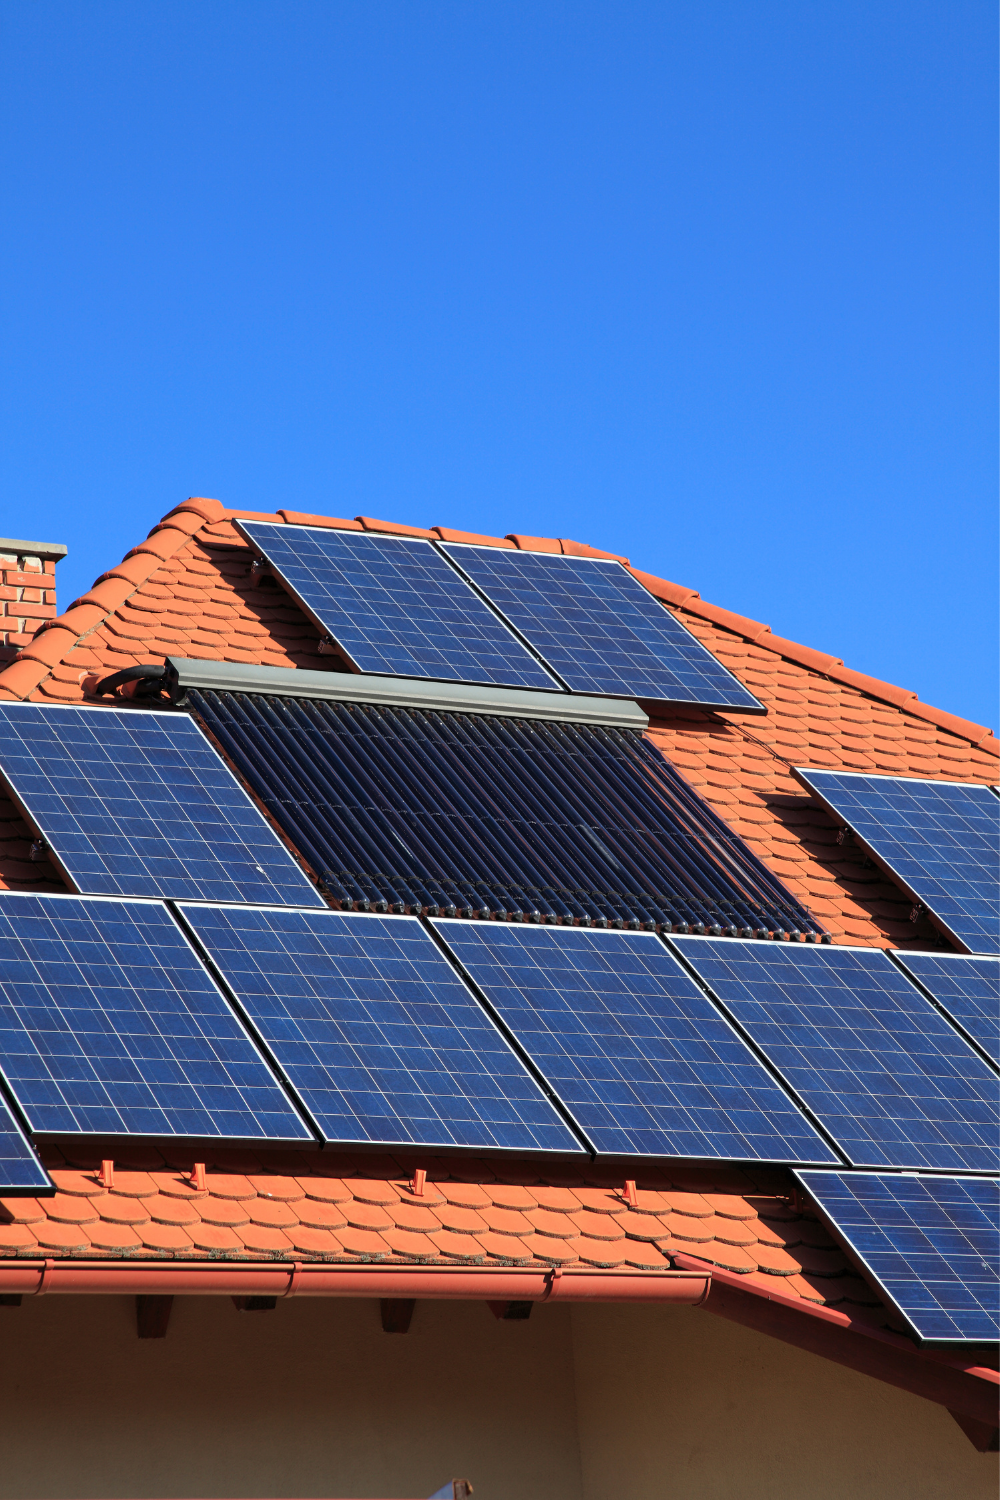 Ways you can Become More Energy Efficient